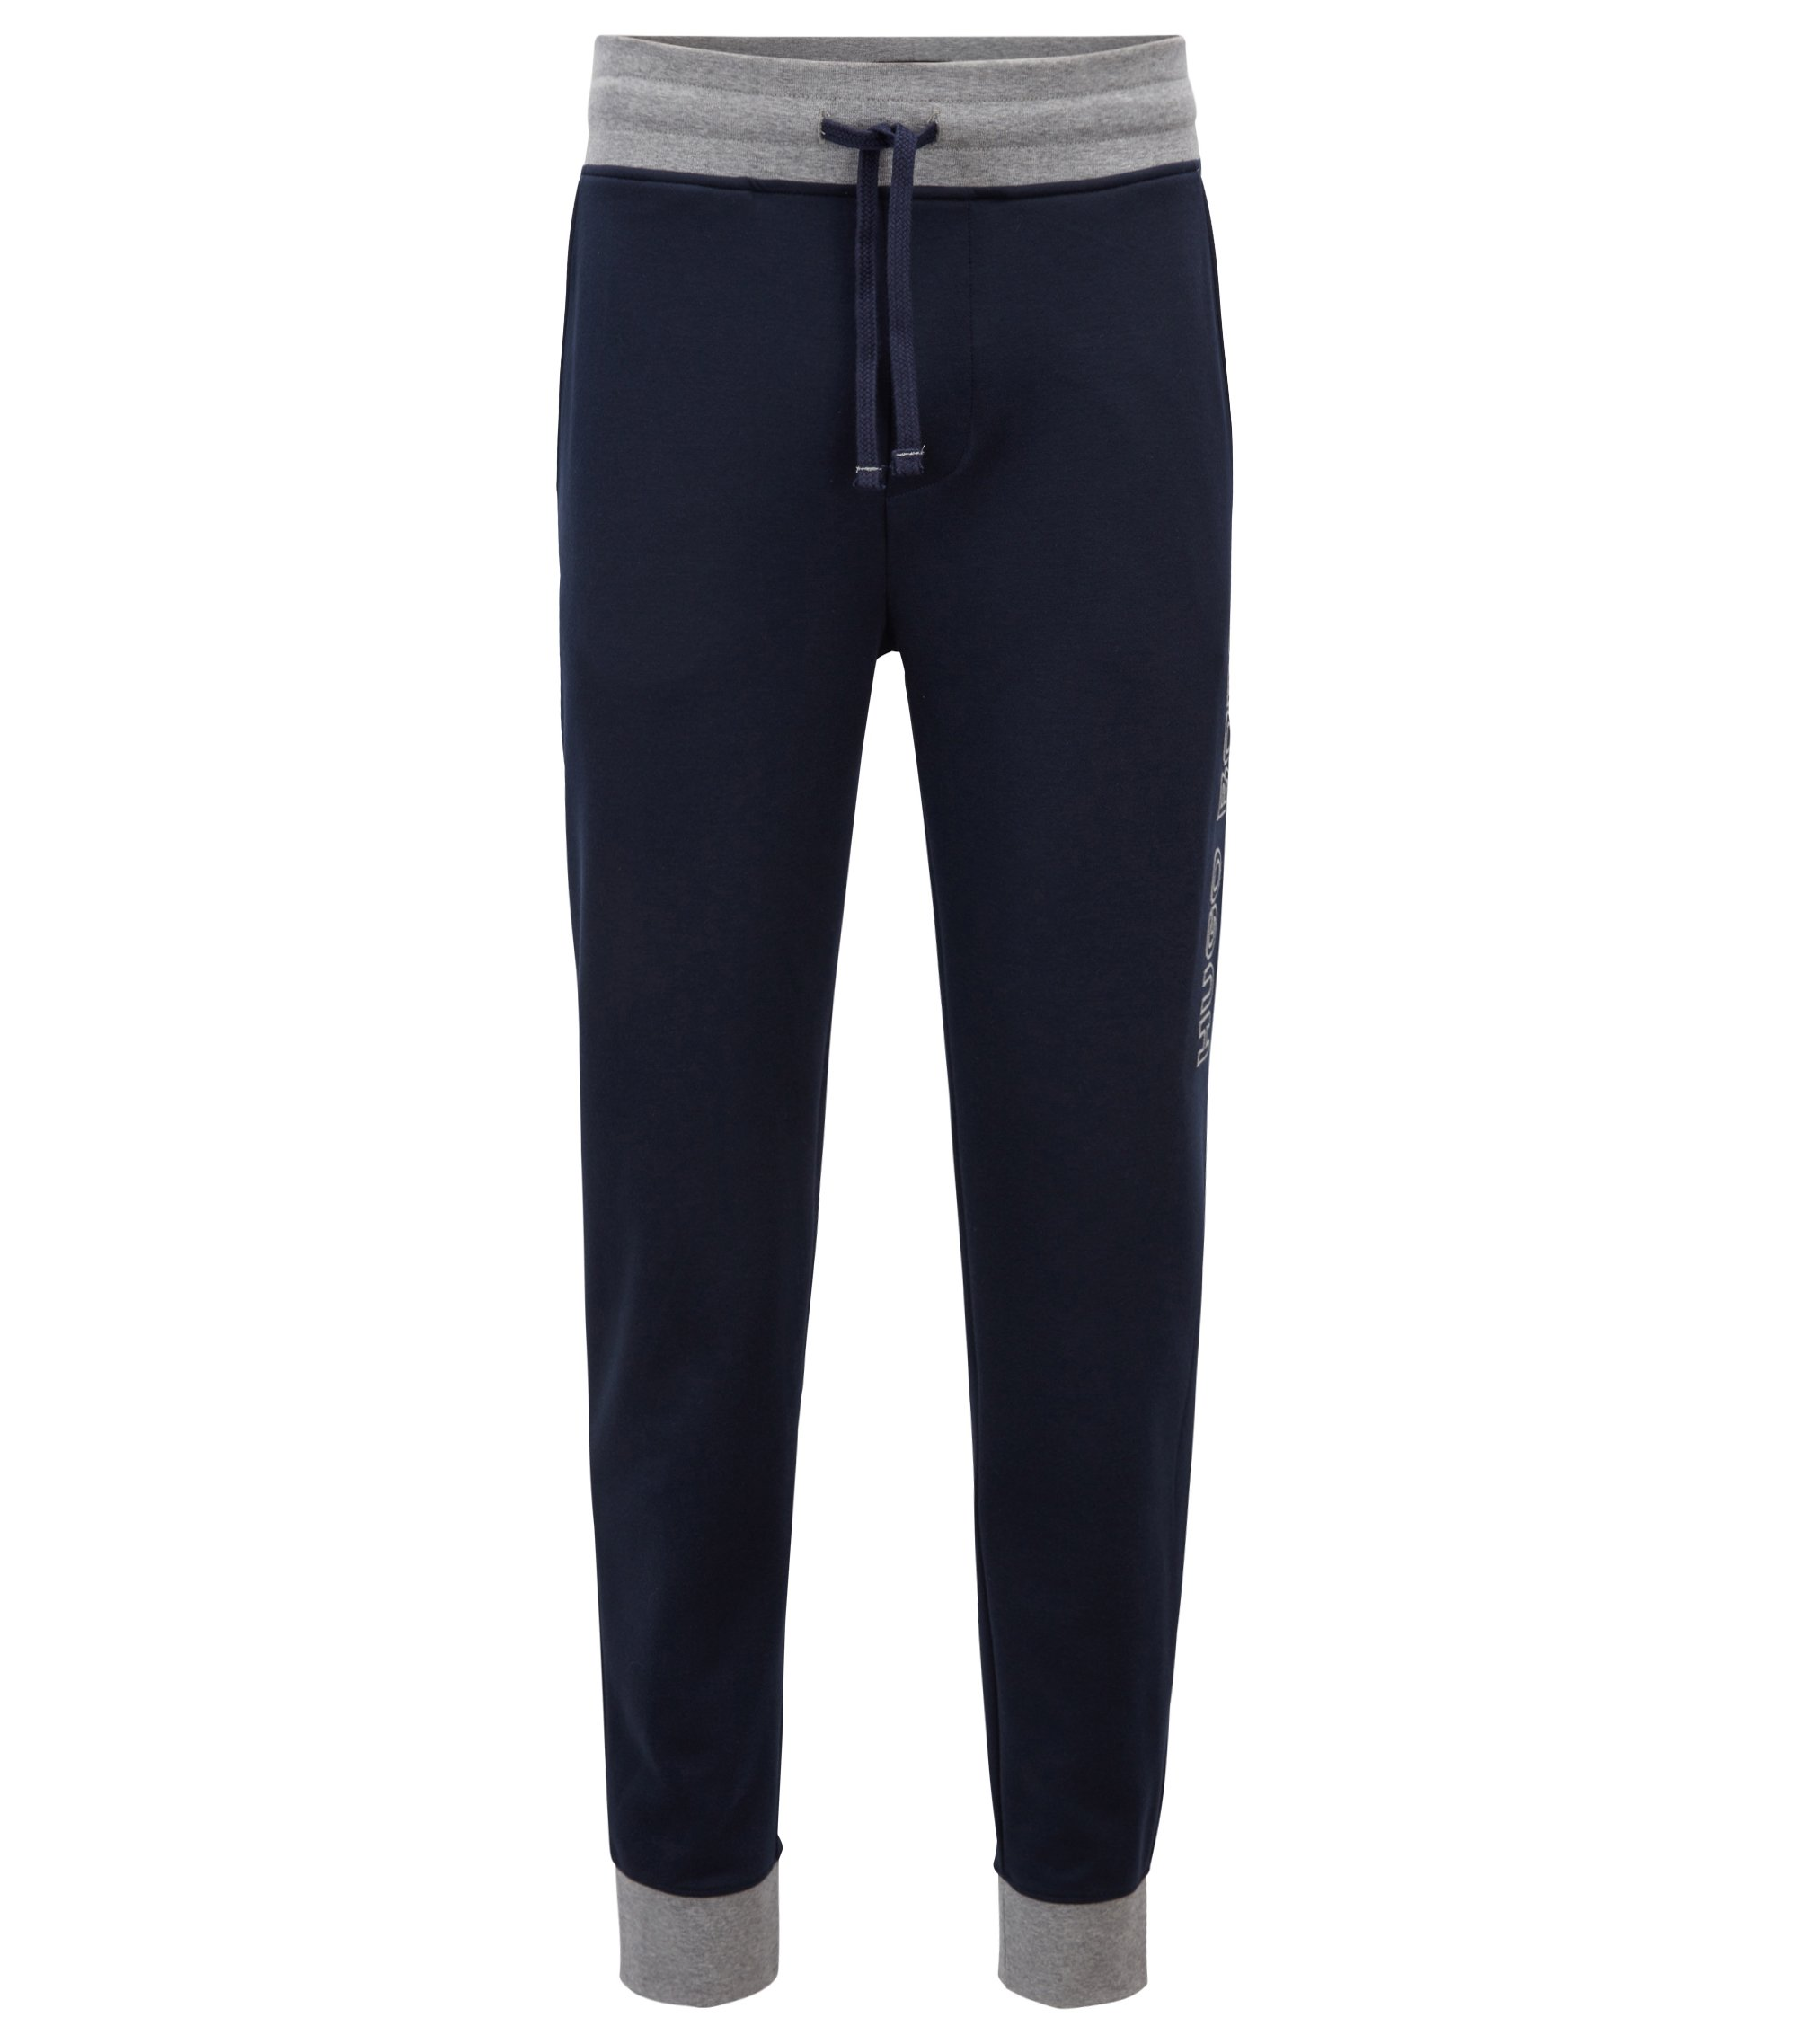 Cuffed jogging bottoms in cotton with contrast details, Dark Blue